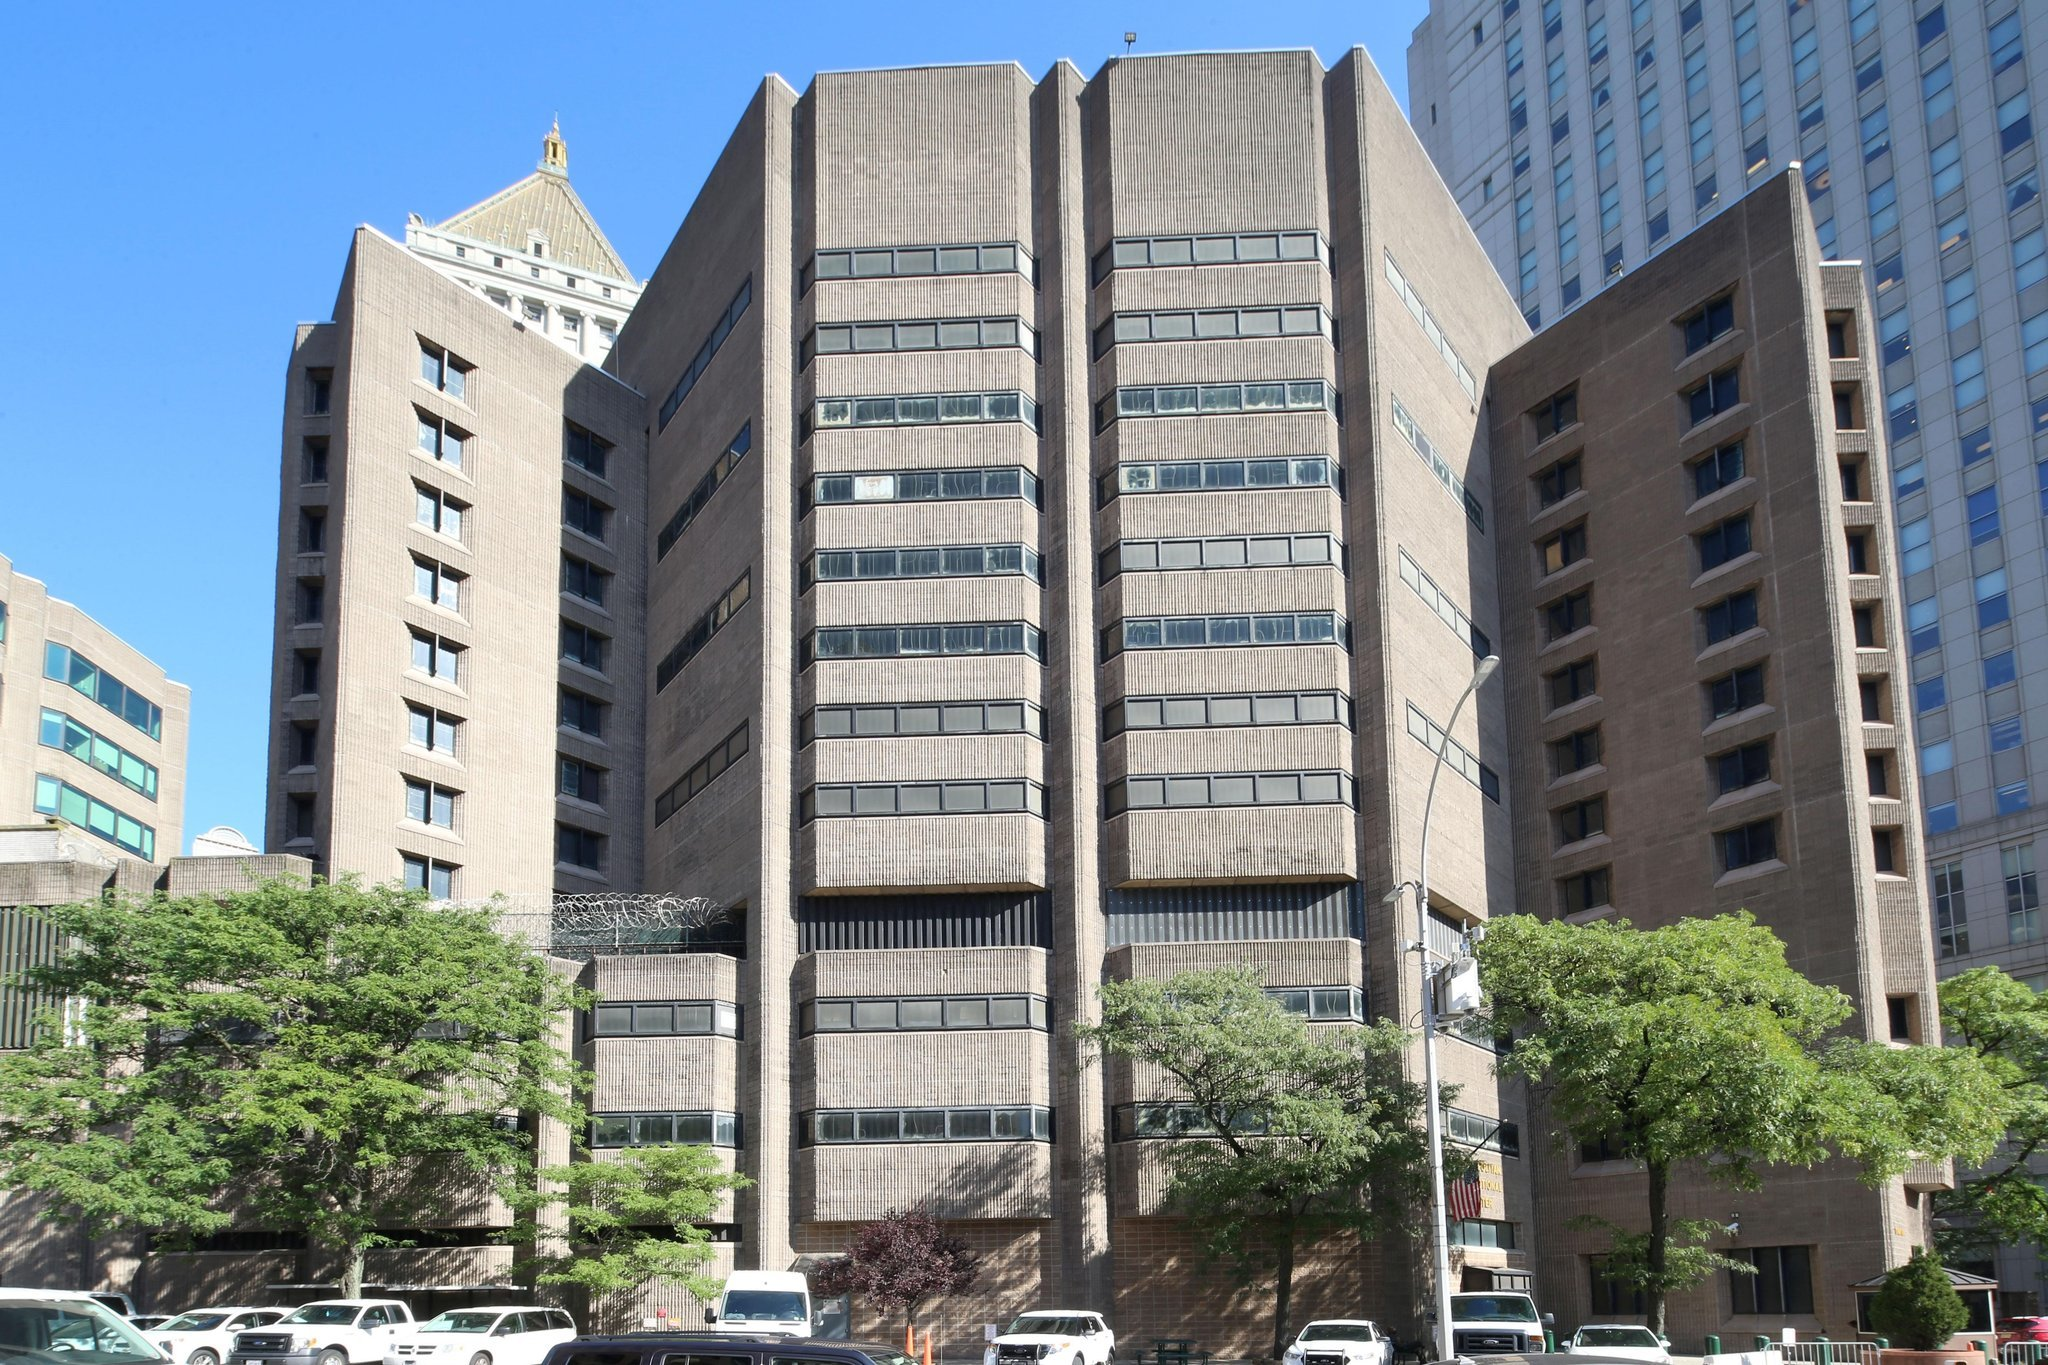 Coronavirus-infected MCC inmate held in unit for 'old and infirm,' court papers claim